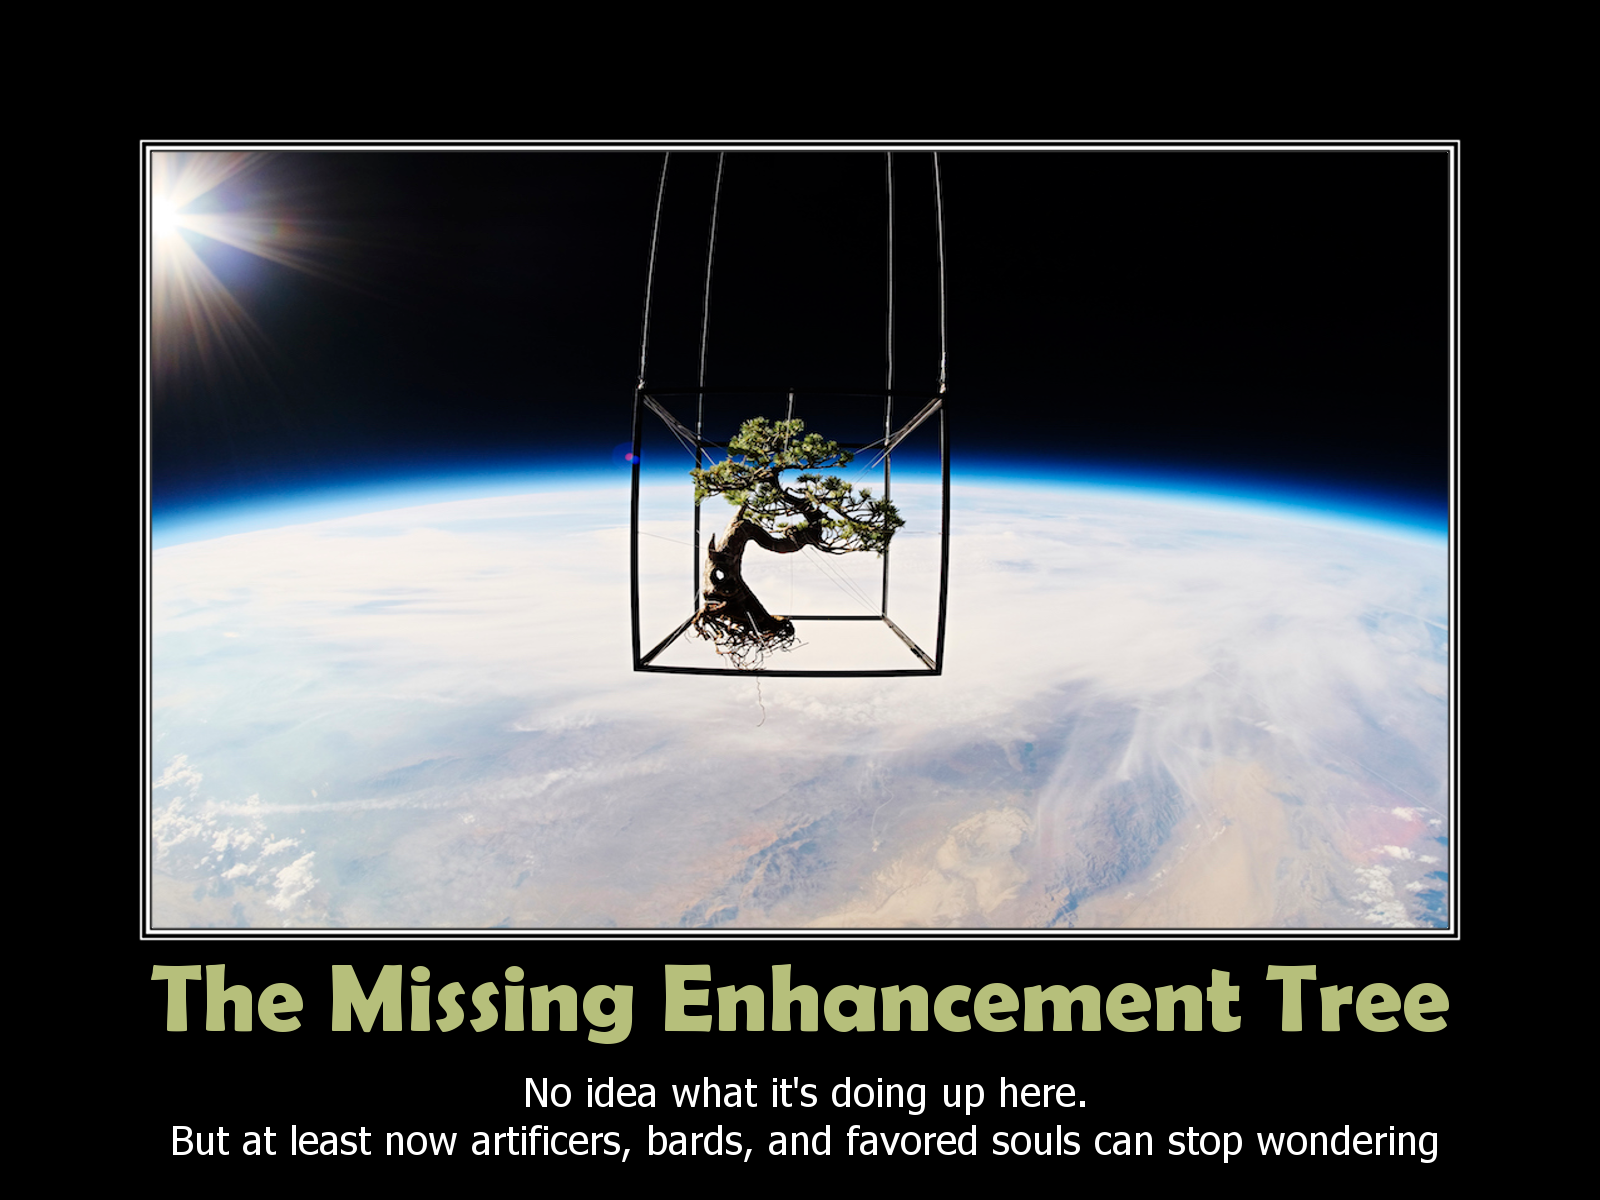 The Missing Enhancement Tree